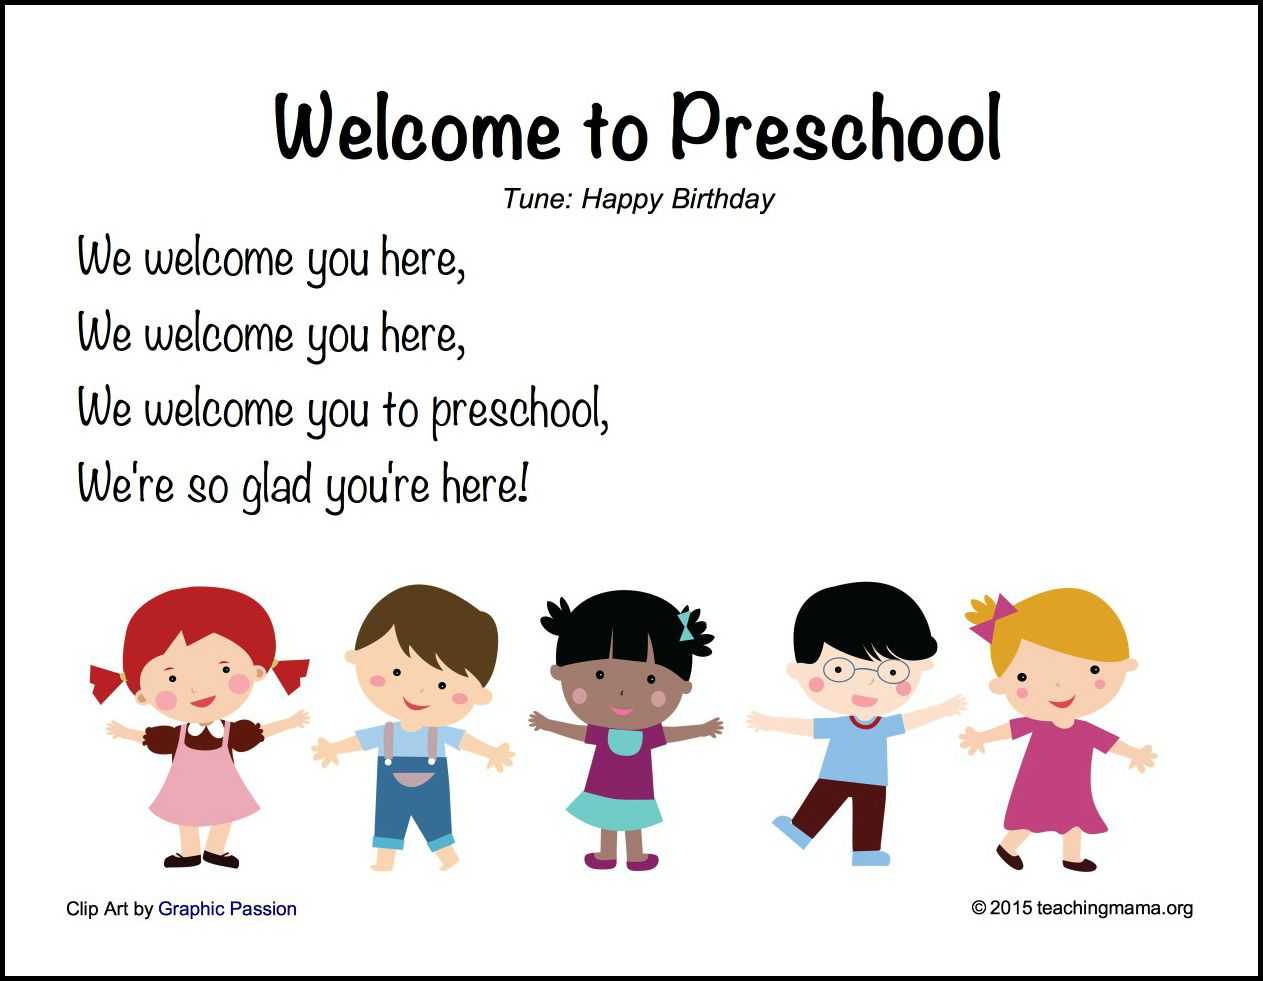 Welcome to Preschool